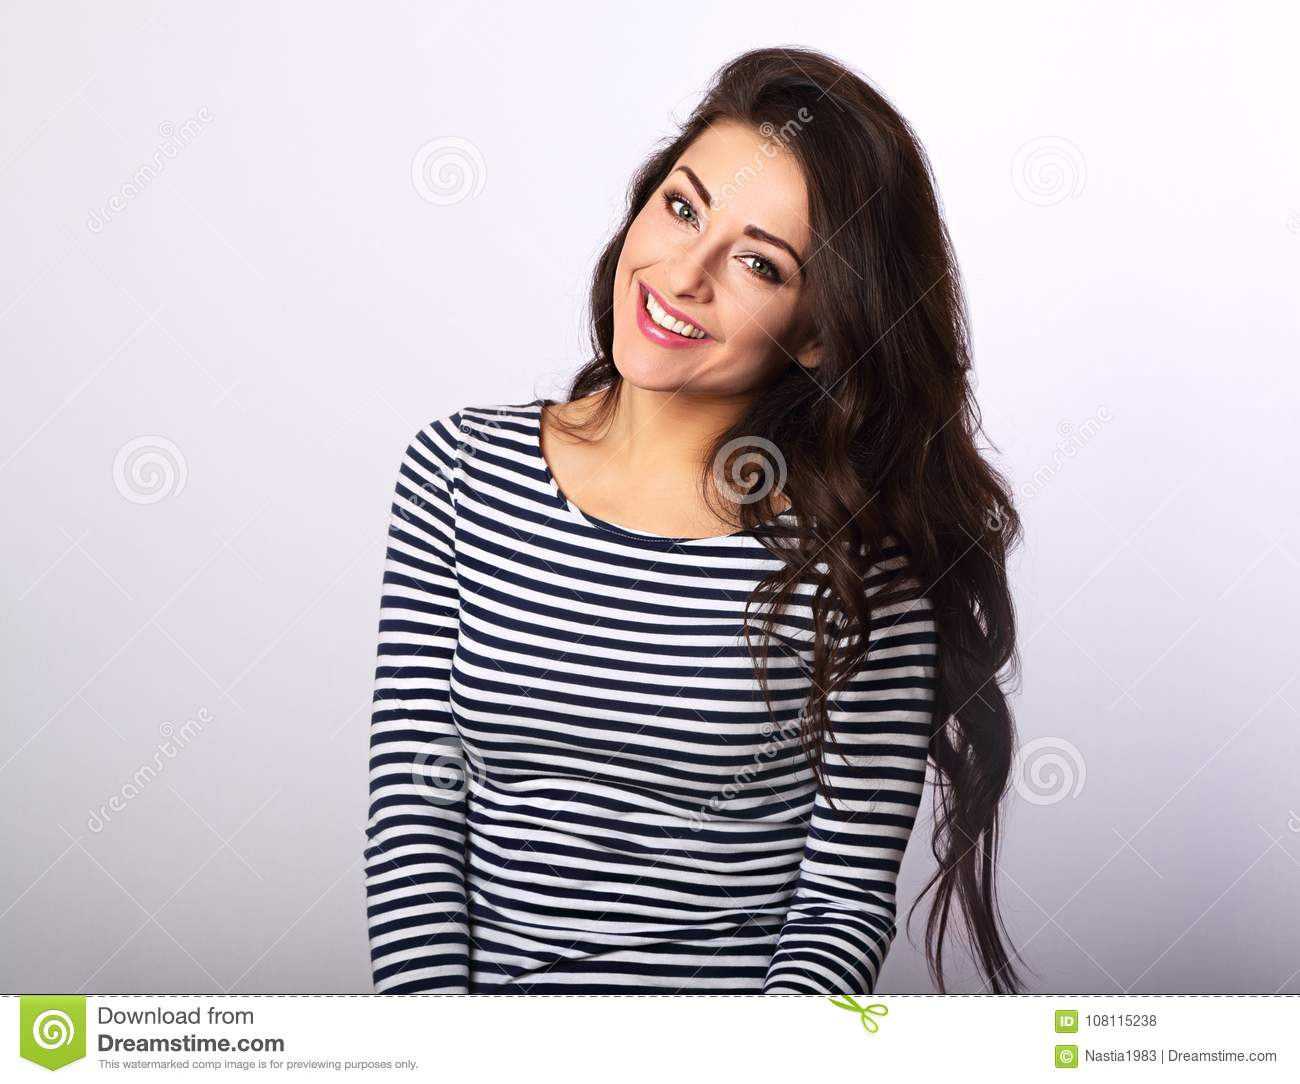 Beautiful positive woman in stripped casual shirt with long hair